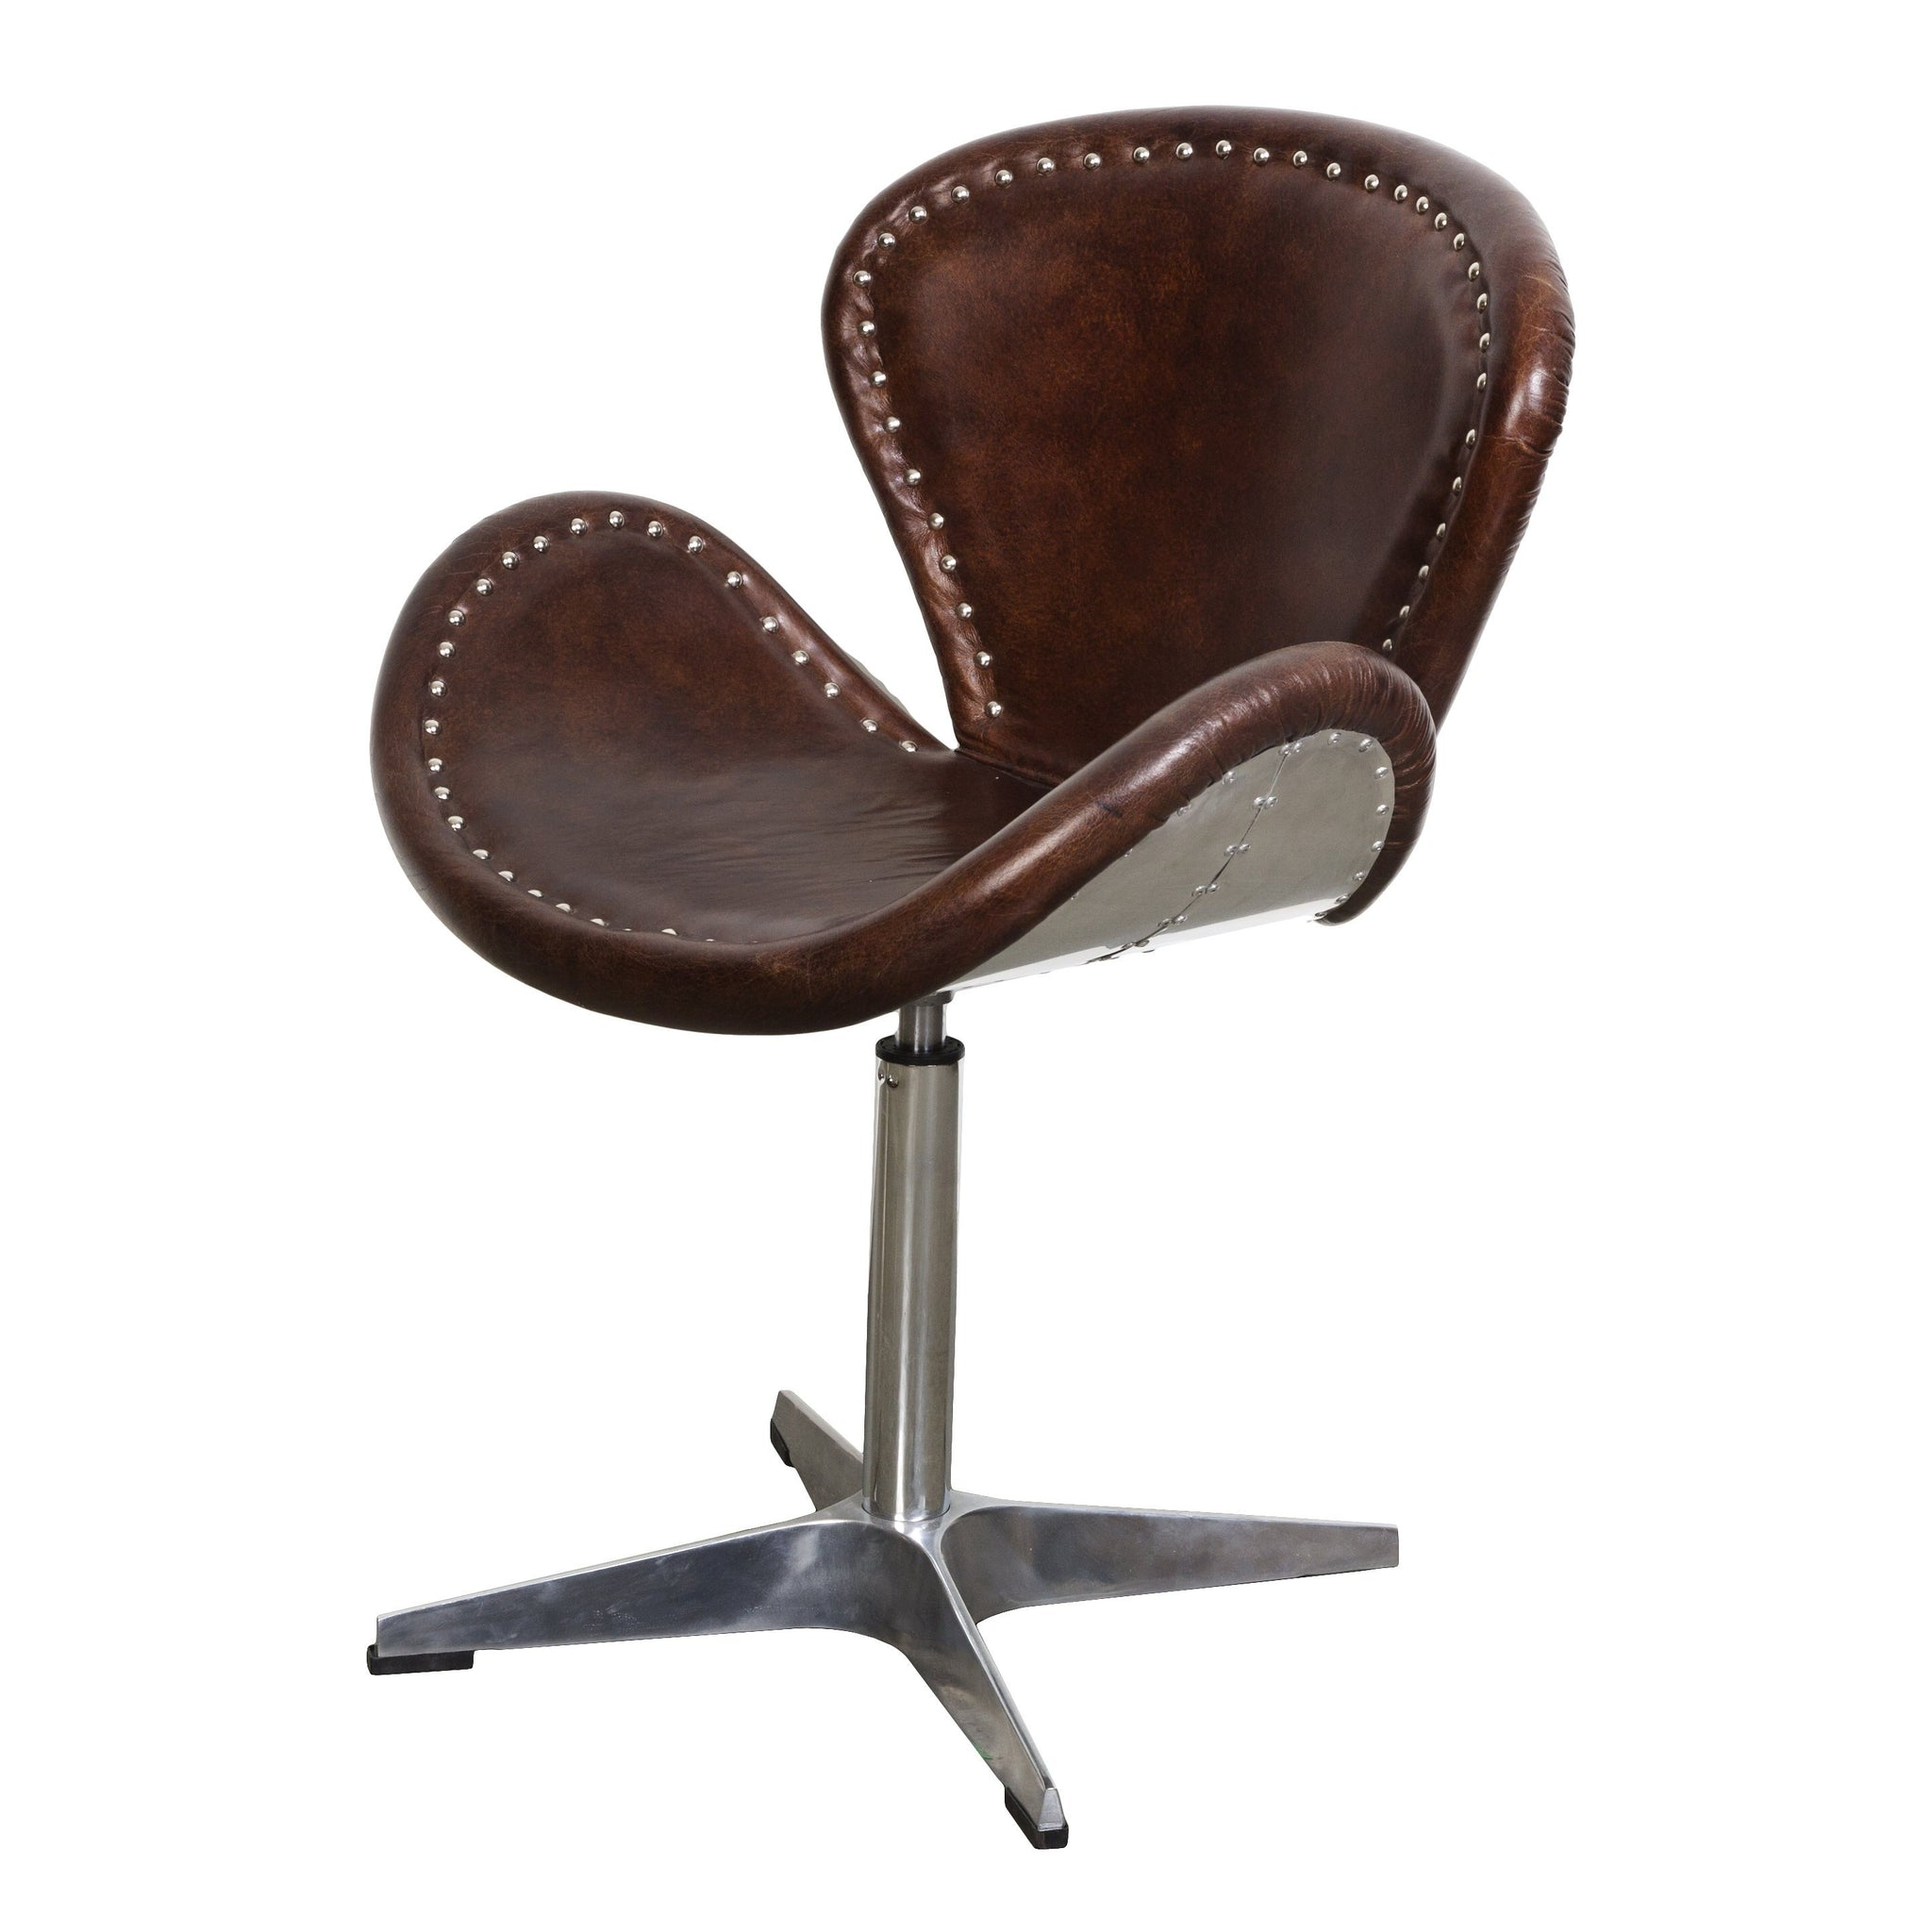 Picture of Mercury Swivel Chair - Vintage Brown Leather